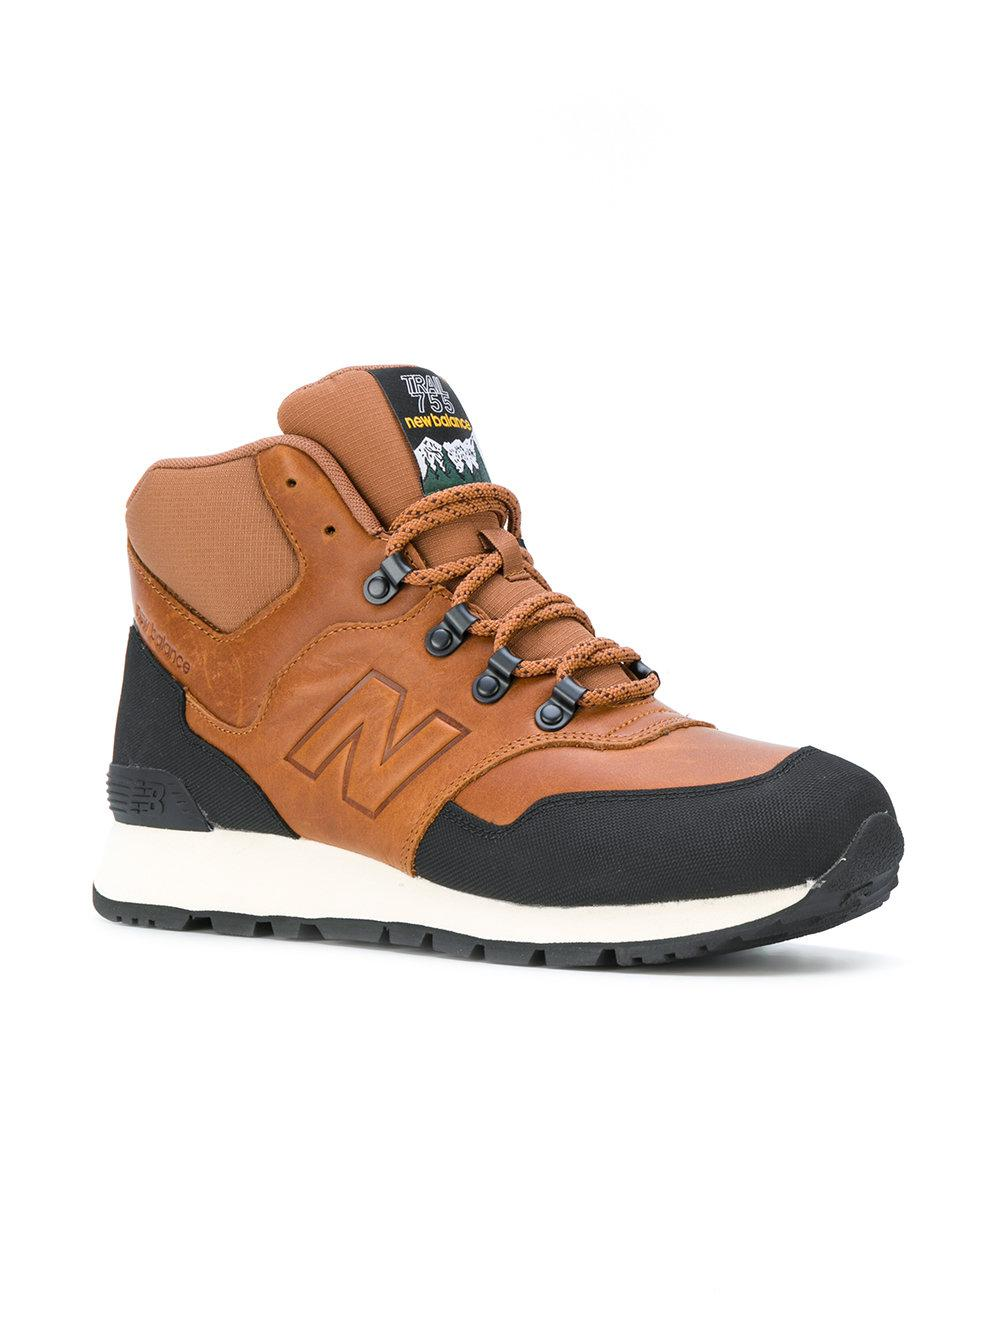 New Balance Synthetic Sneakers '755 Winter' in Brown for Men - Lyst